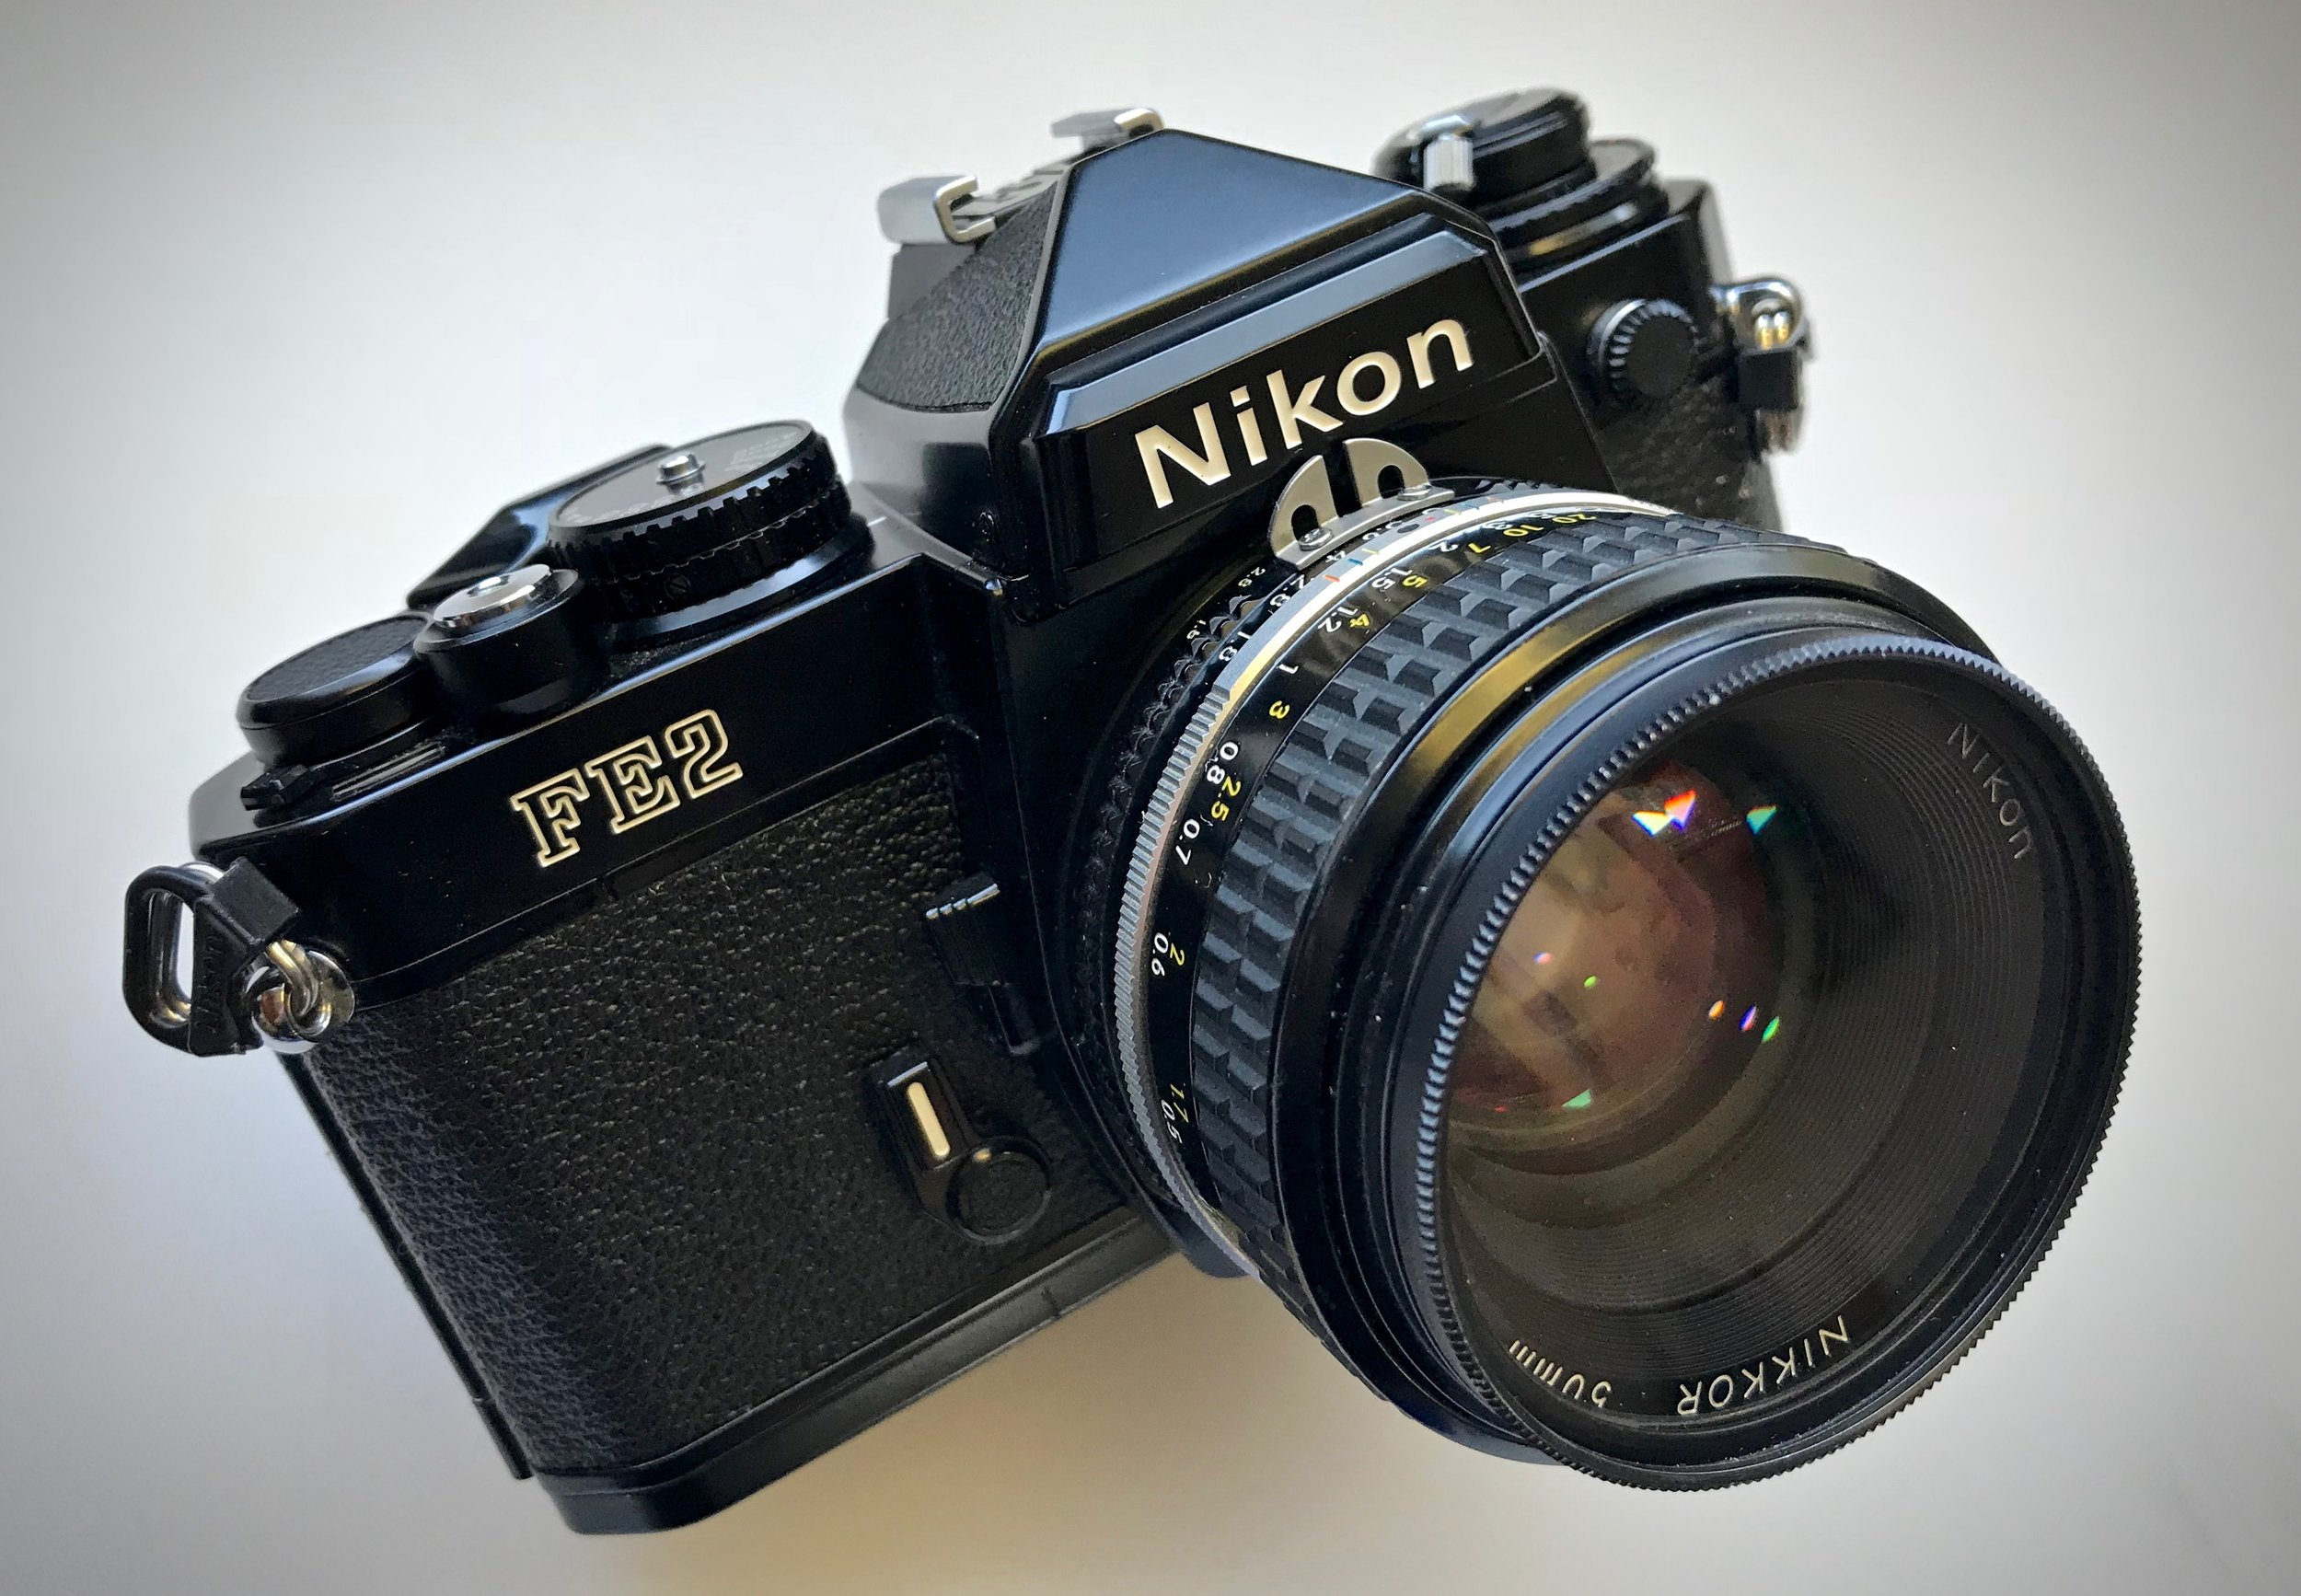 Nikon FE2 with 50mm f/1.8 Nikkor lens